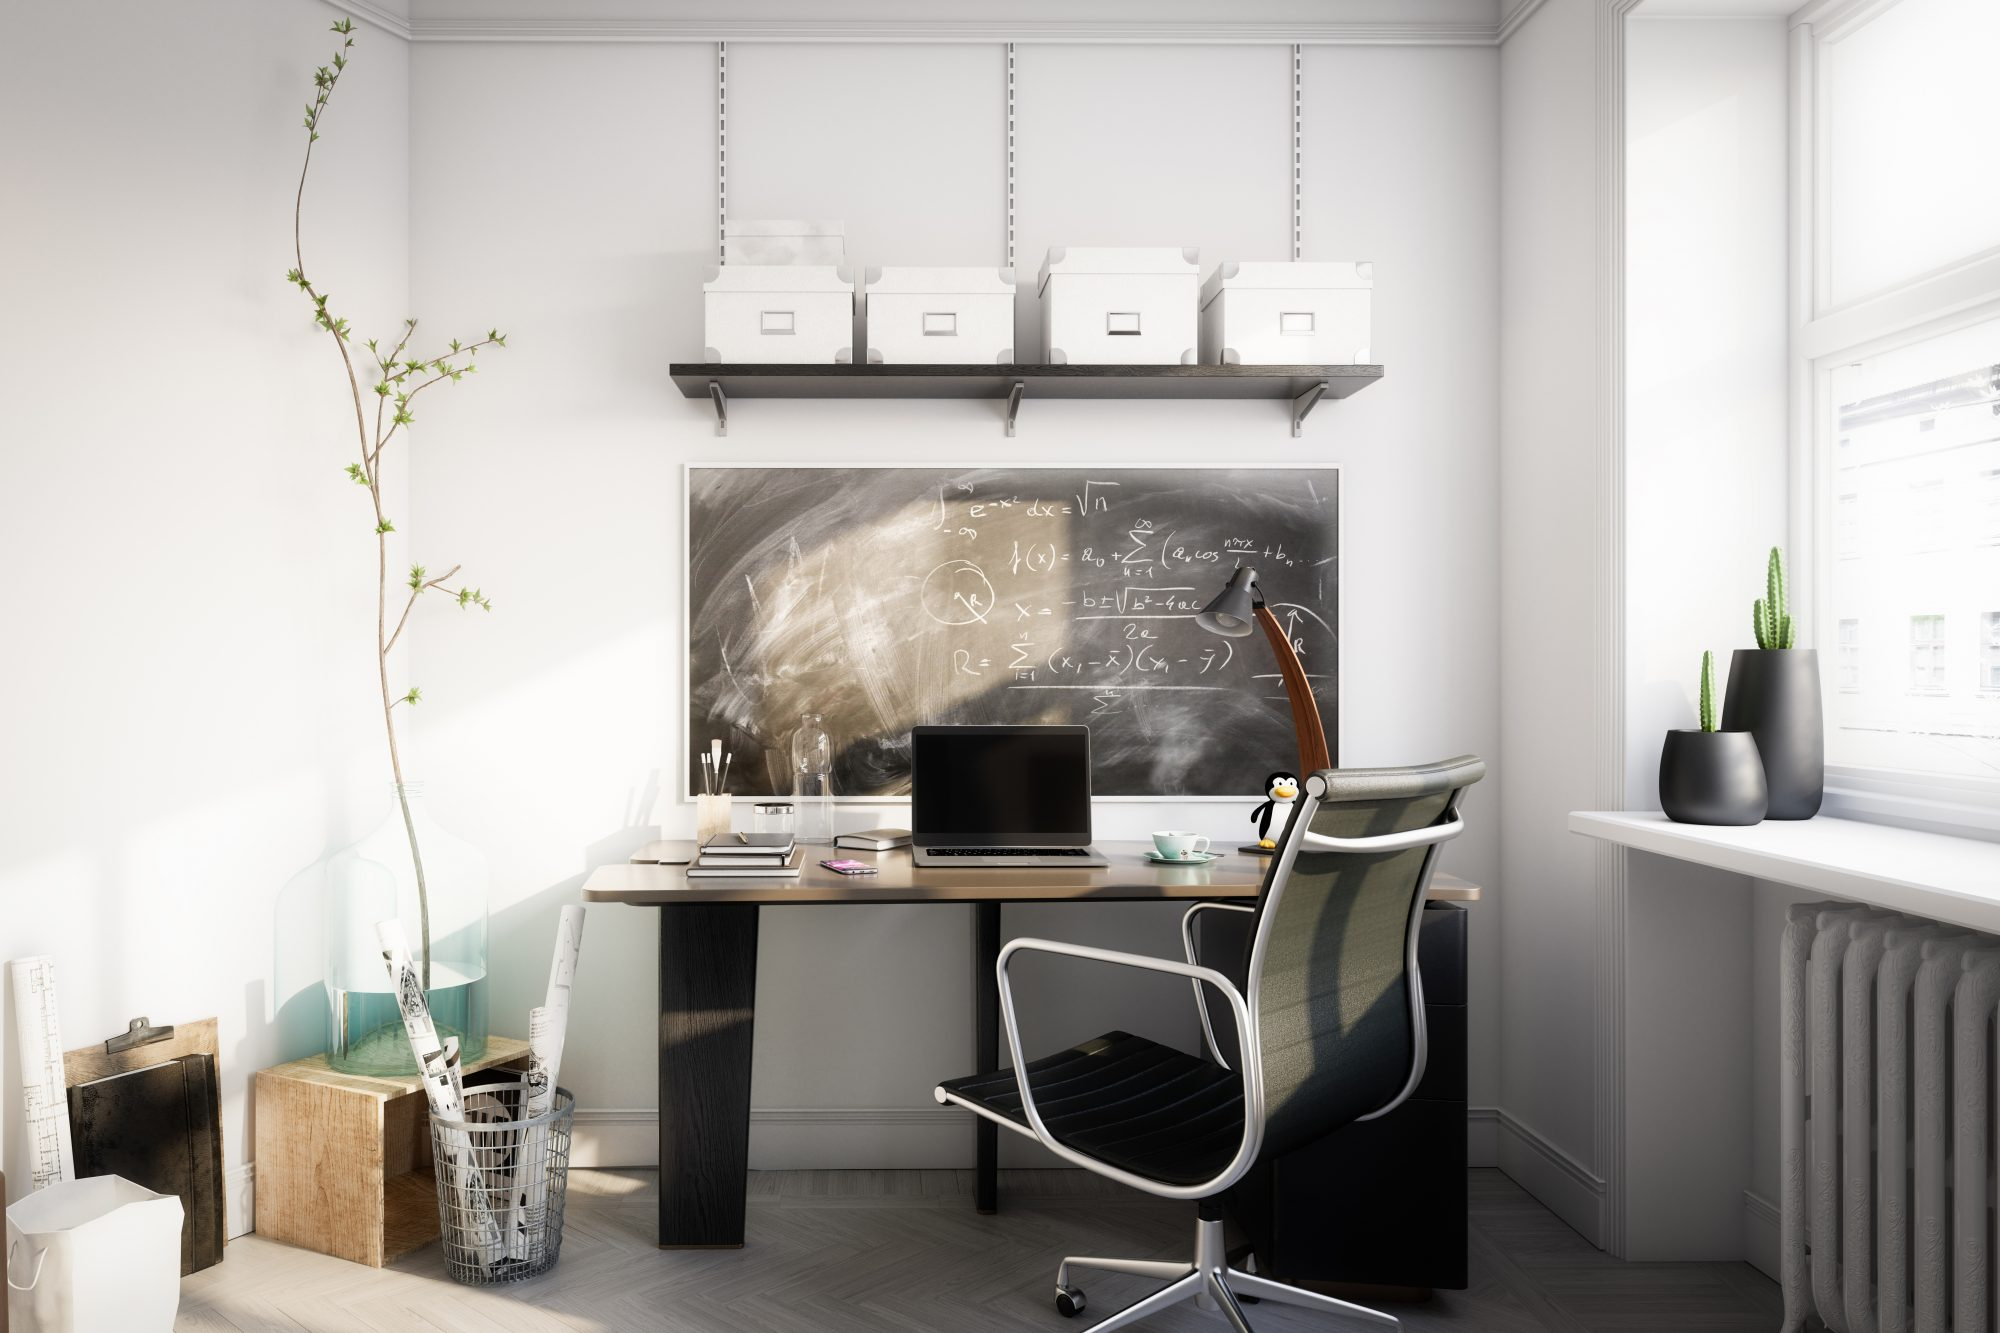 Spruce up your home, well designed office space